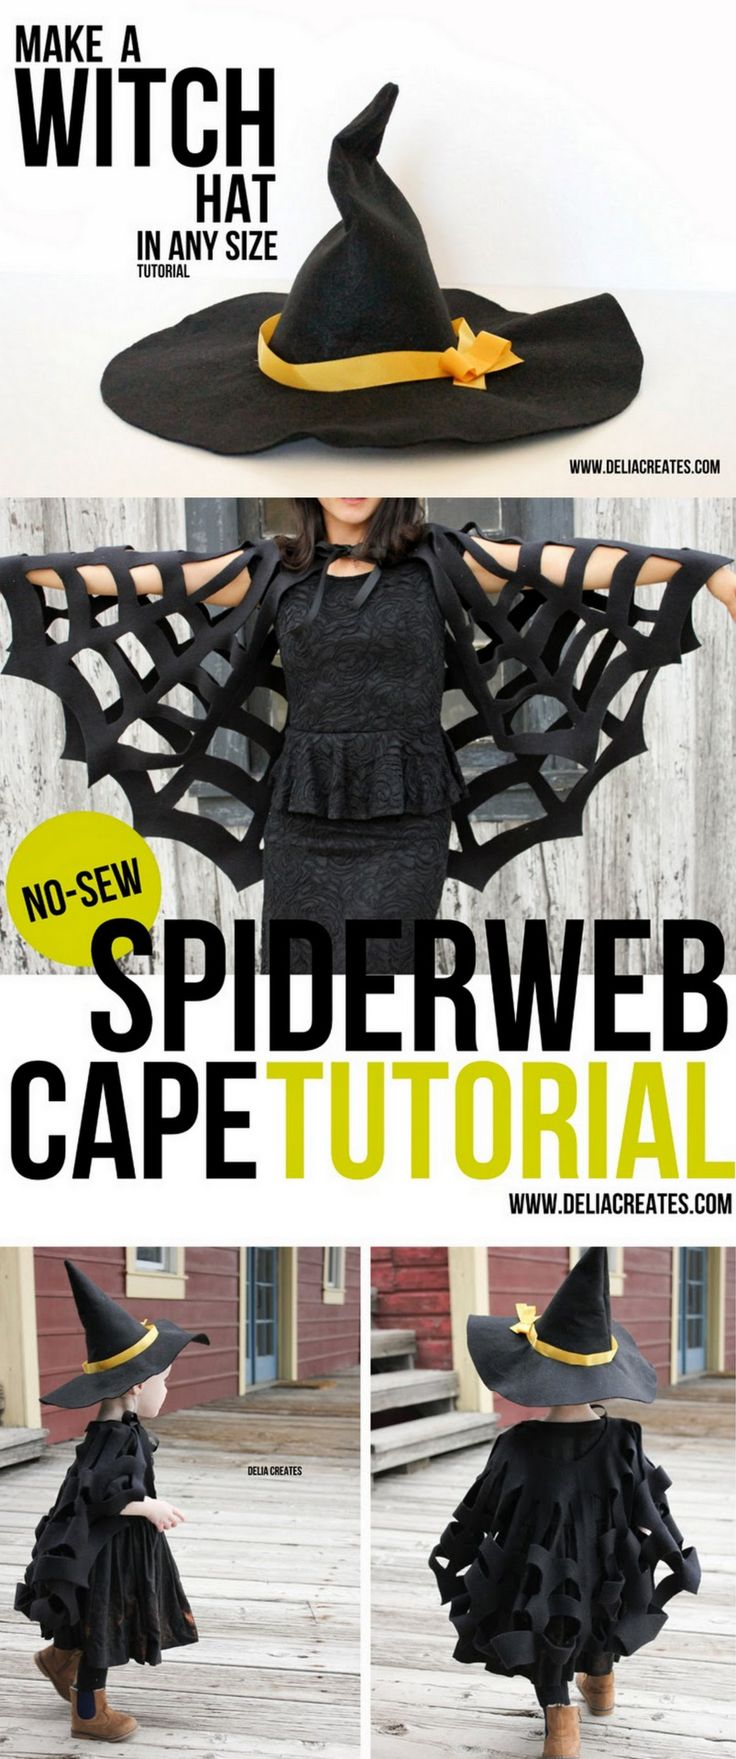 halloweencrafts     DIY Halloween Witch Costume Tutorial from Delia Creates  Make a DIY Witch Costume that includes a DIY Spiderweb Cape and a DIY Hat